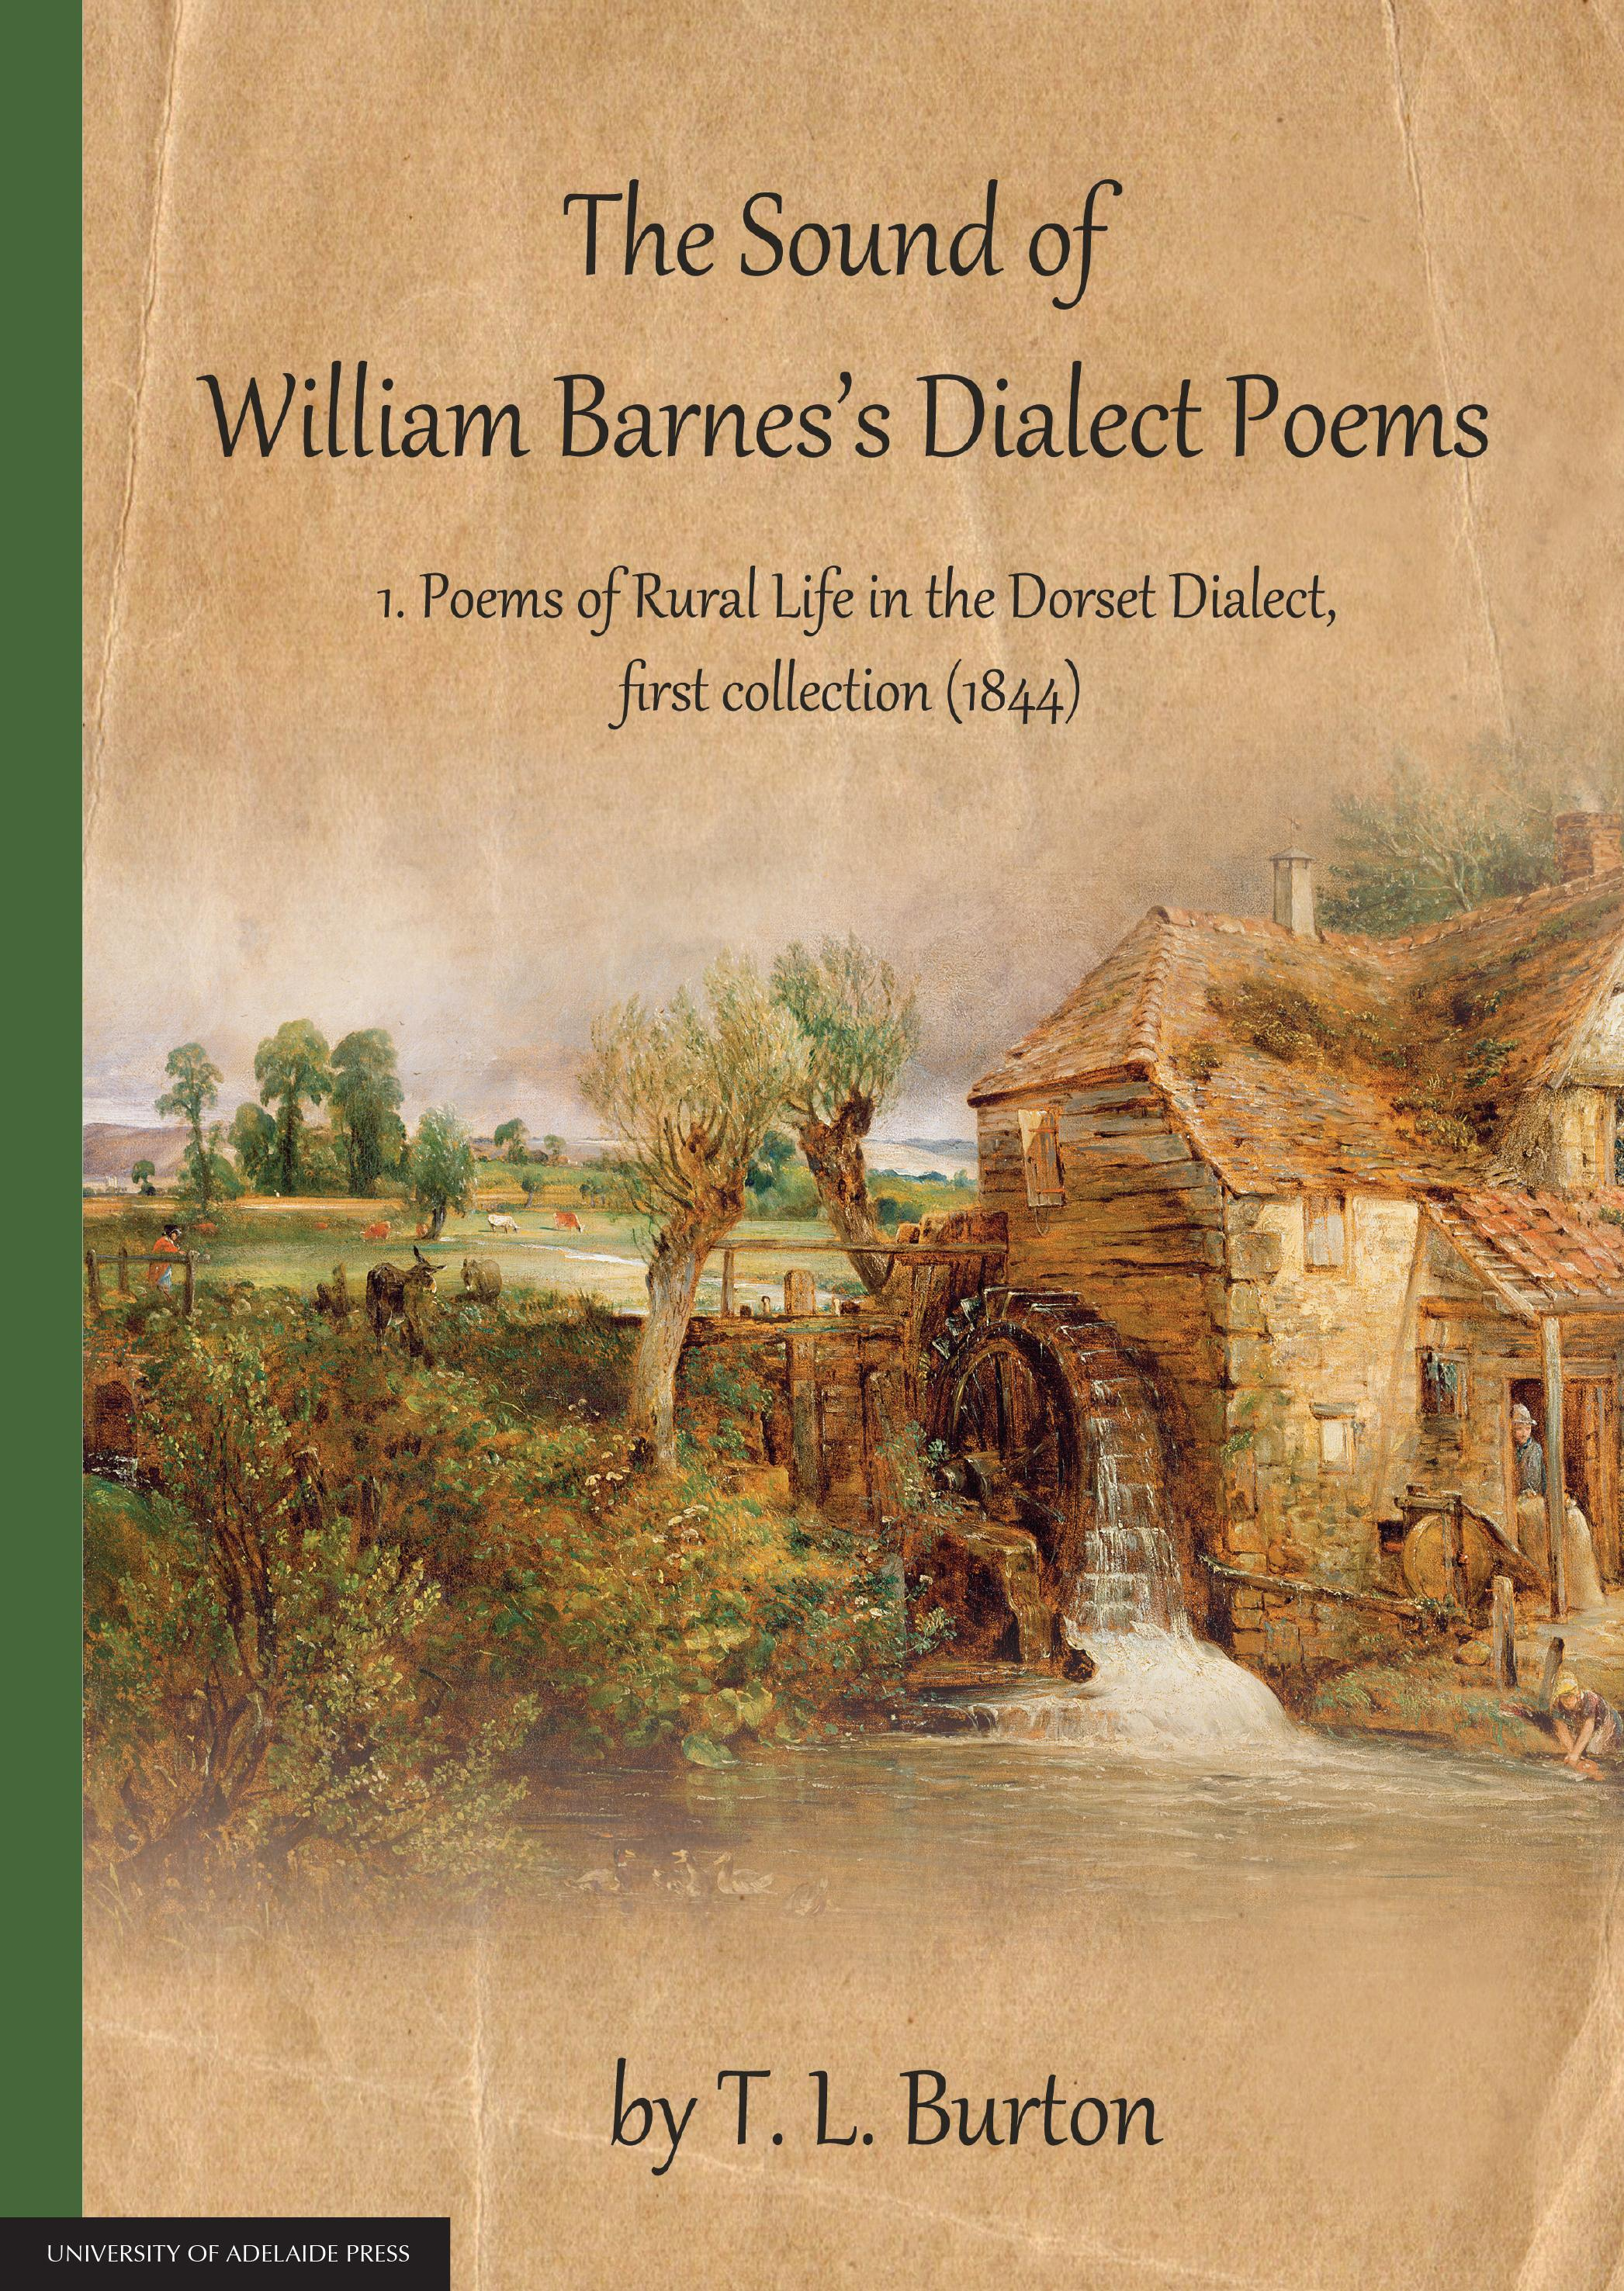 The Sound of William Barnes's Dialect Poems 1